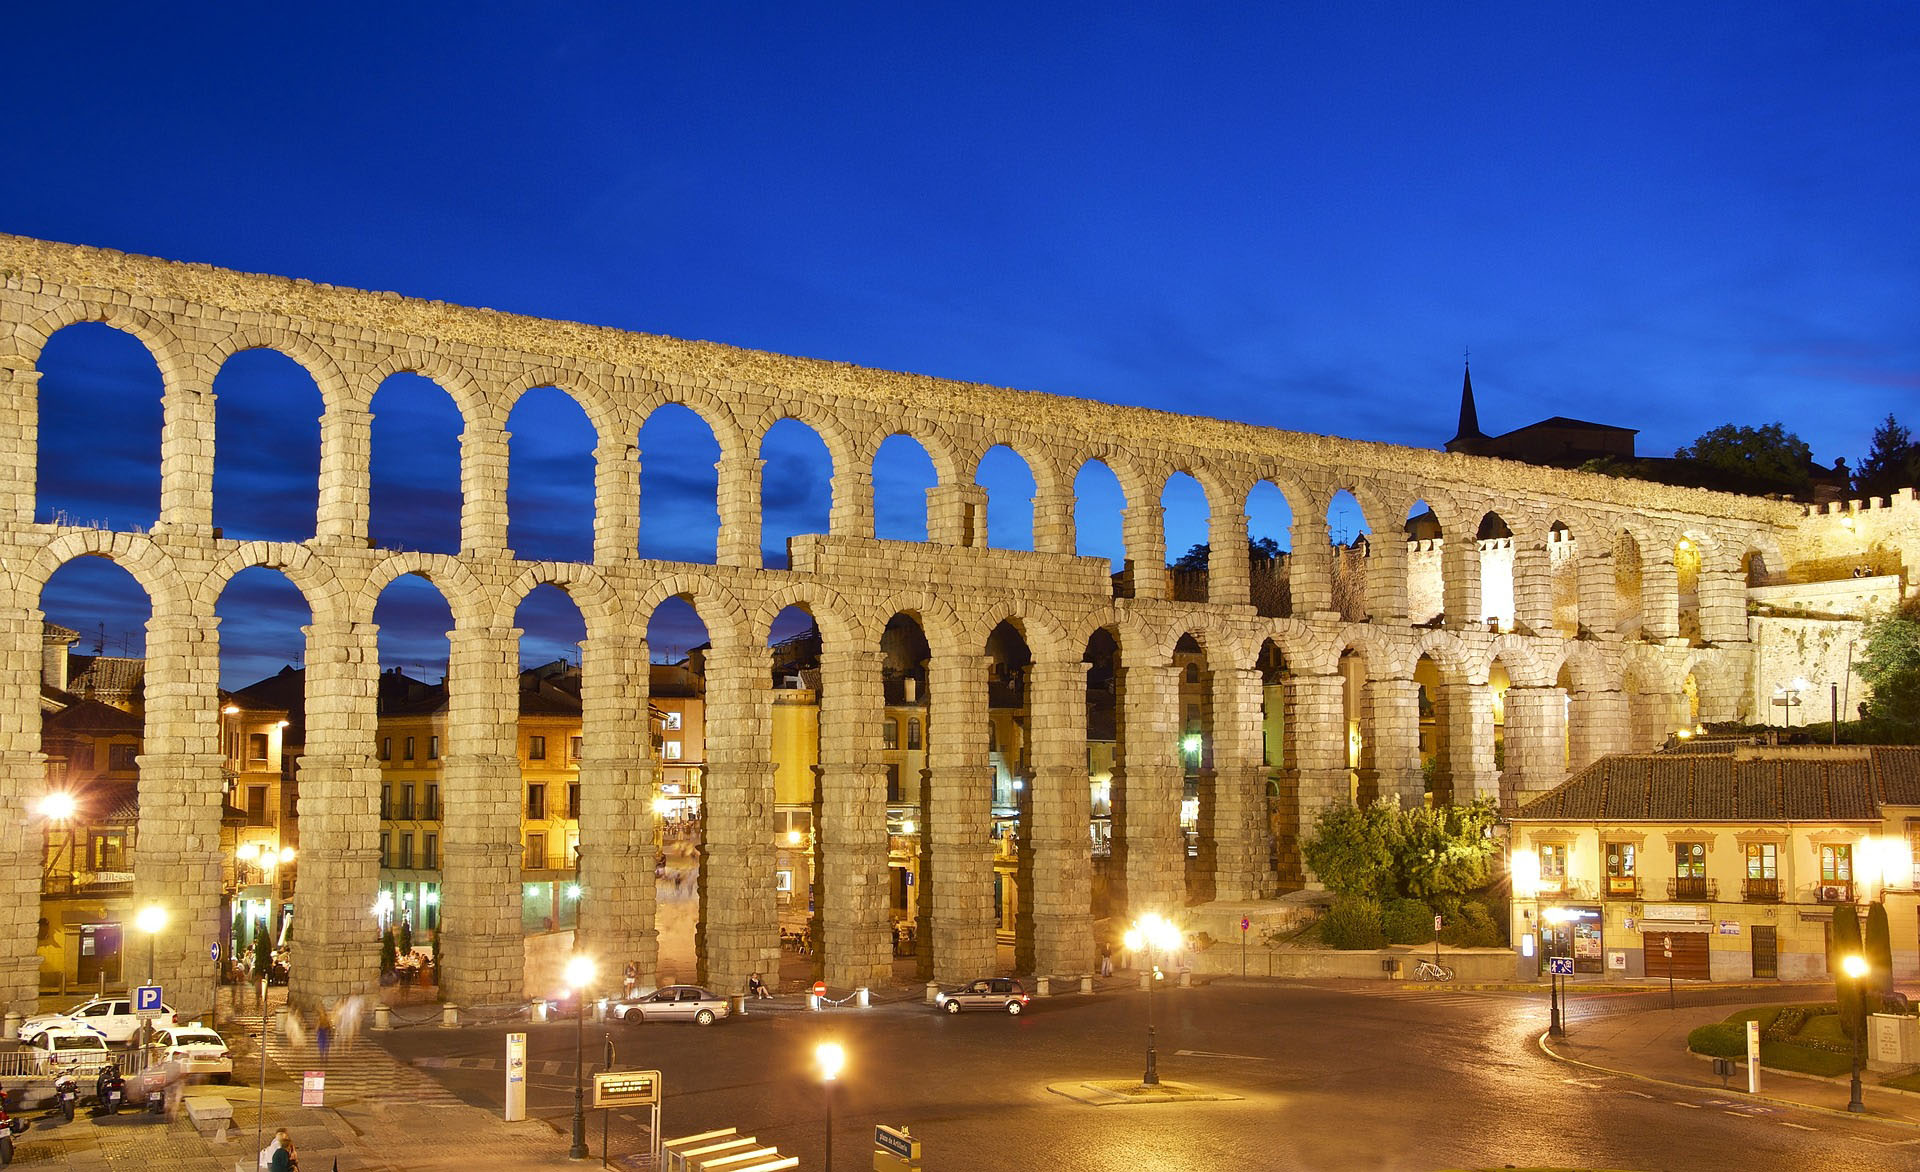 SEGOVIA, THE CONQUEST OF THE WATER